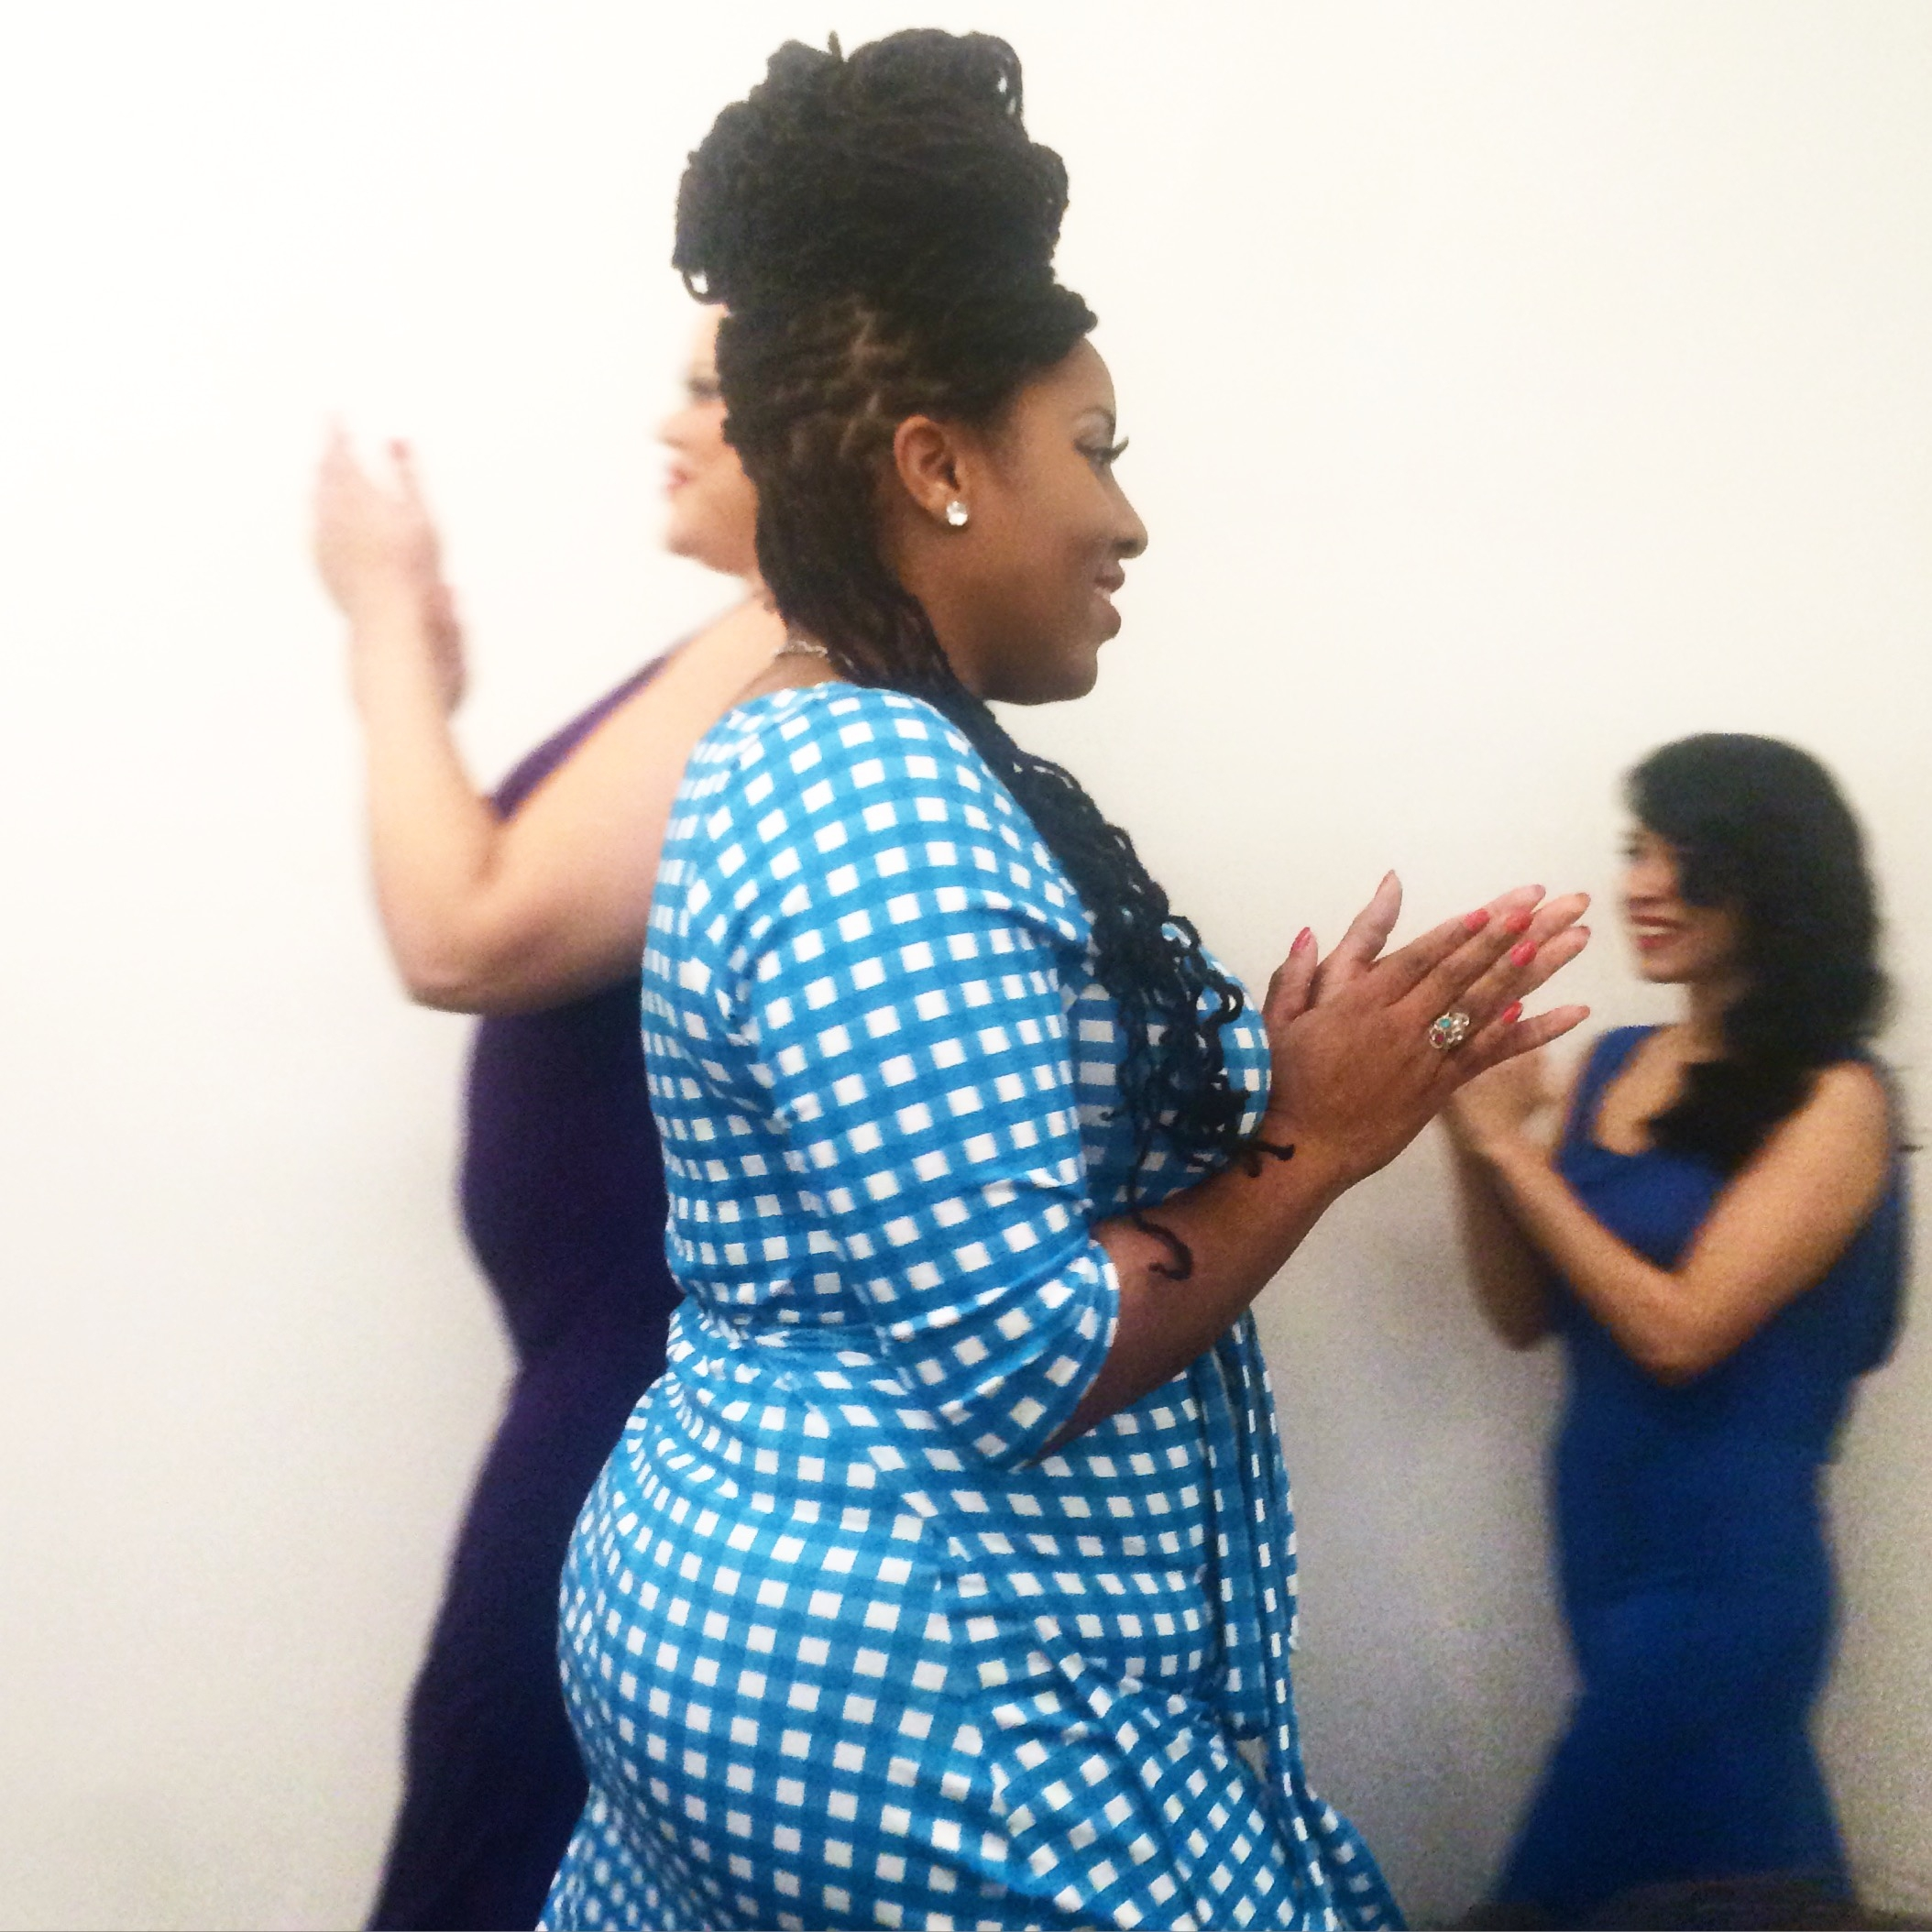 Body Positive Plus Size Models NYC NYFW Fashion Week Fashion Show Natural Hair Curvy Woman Runway